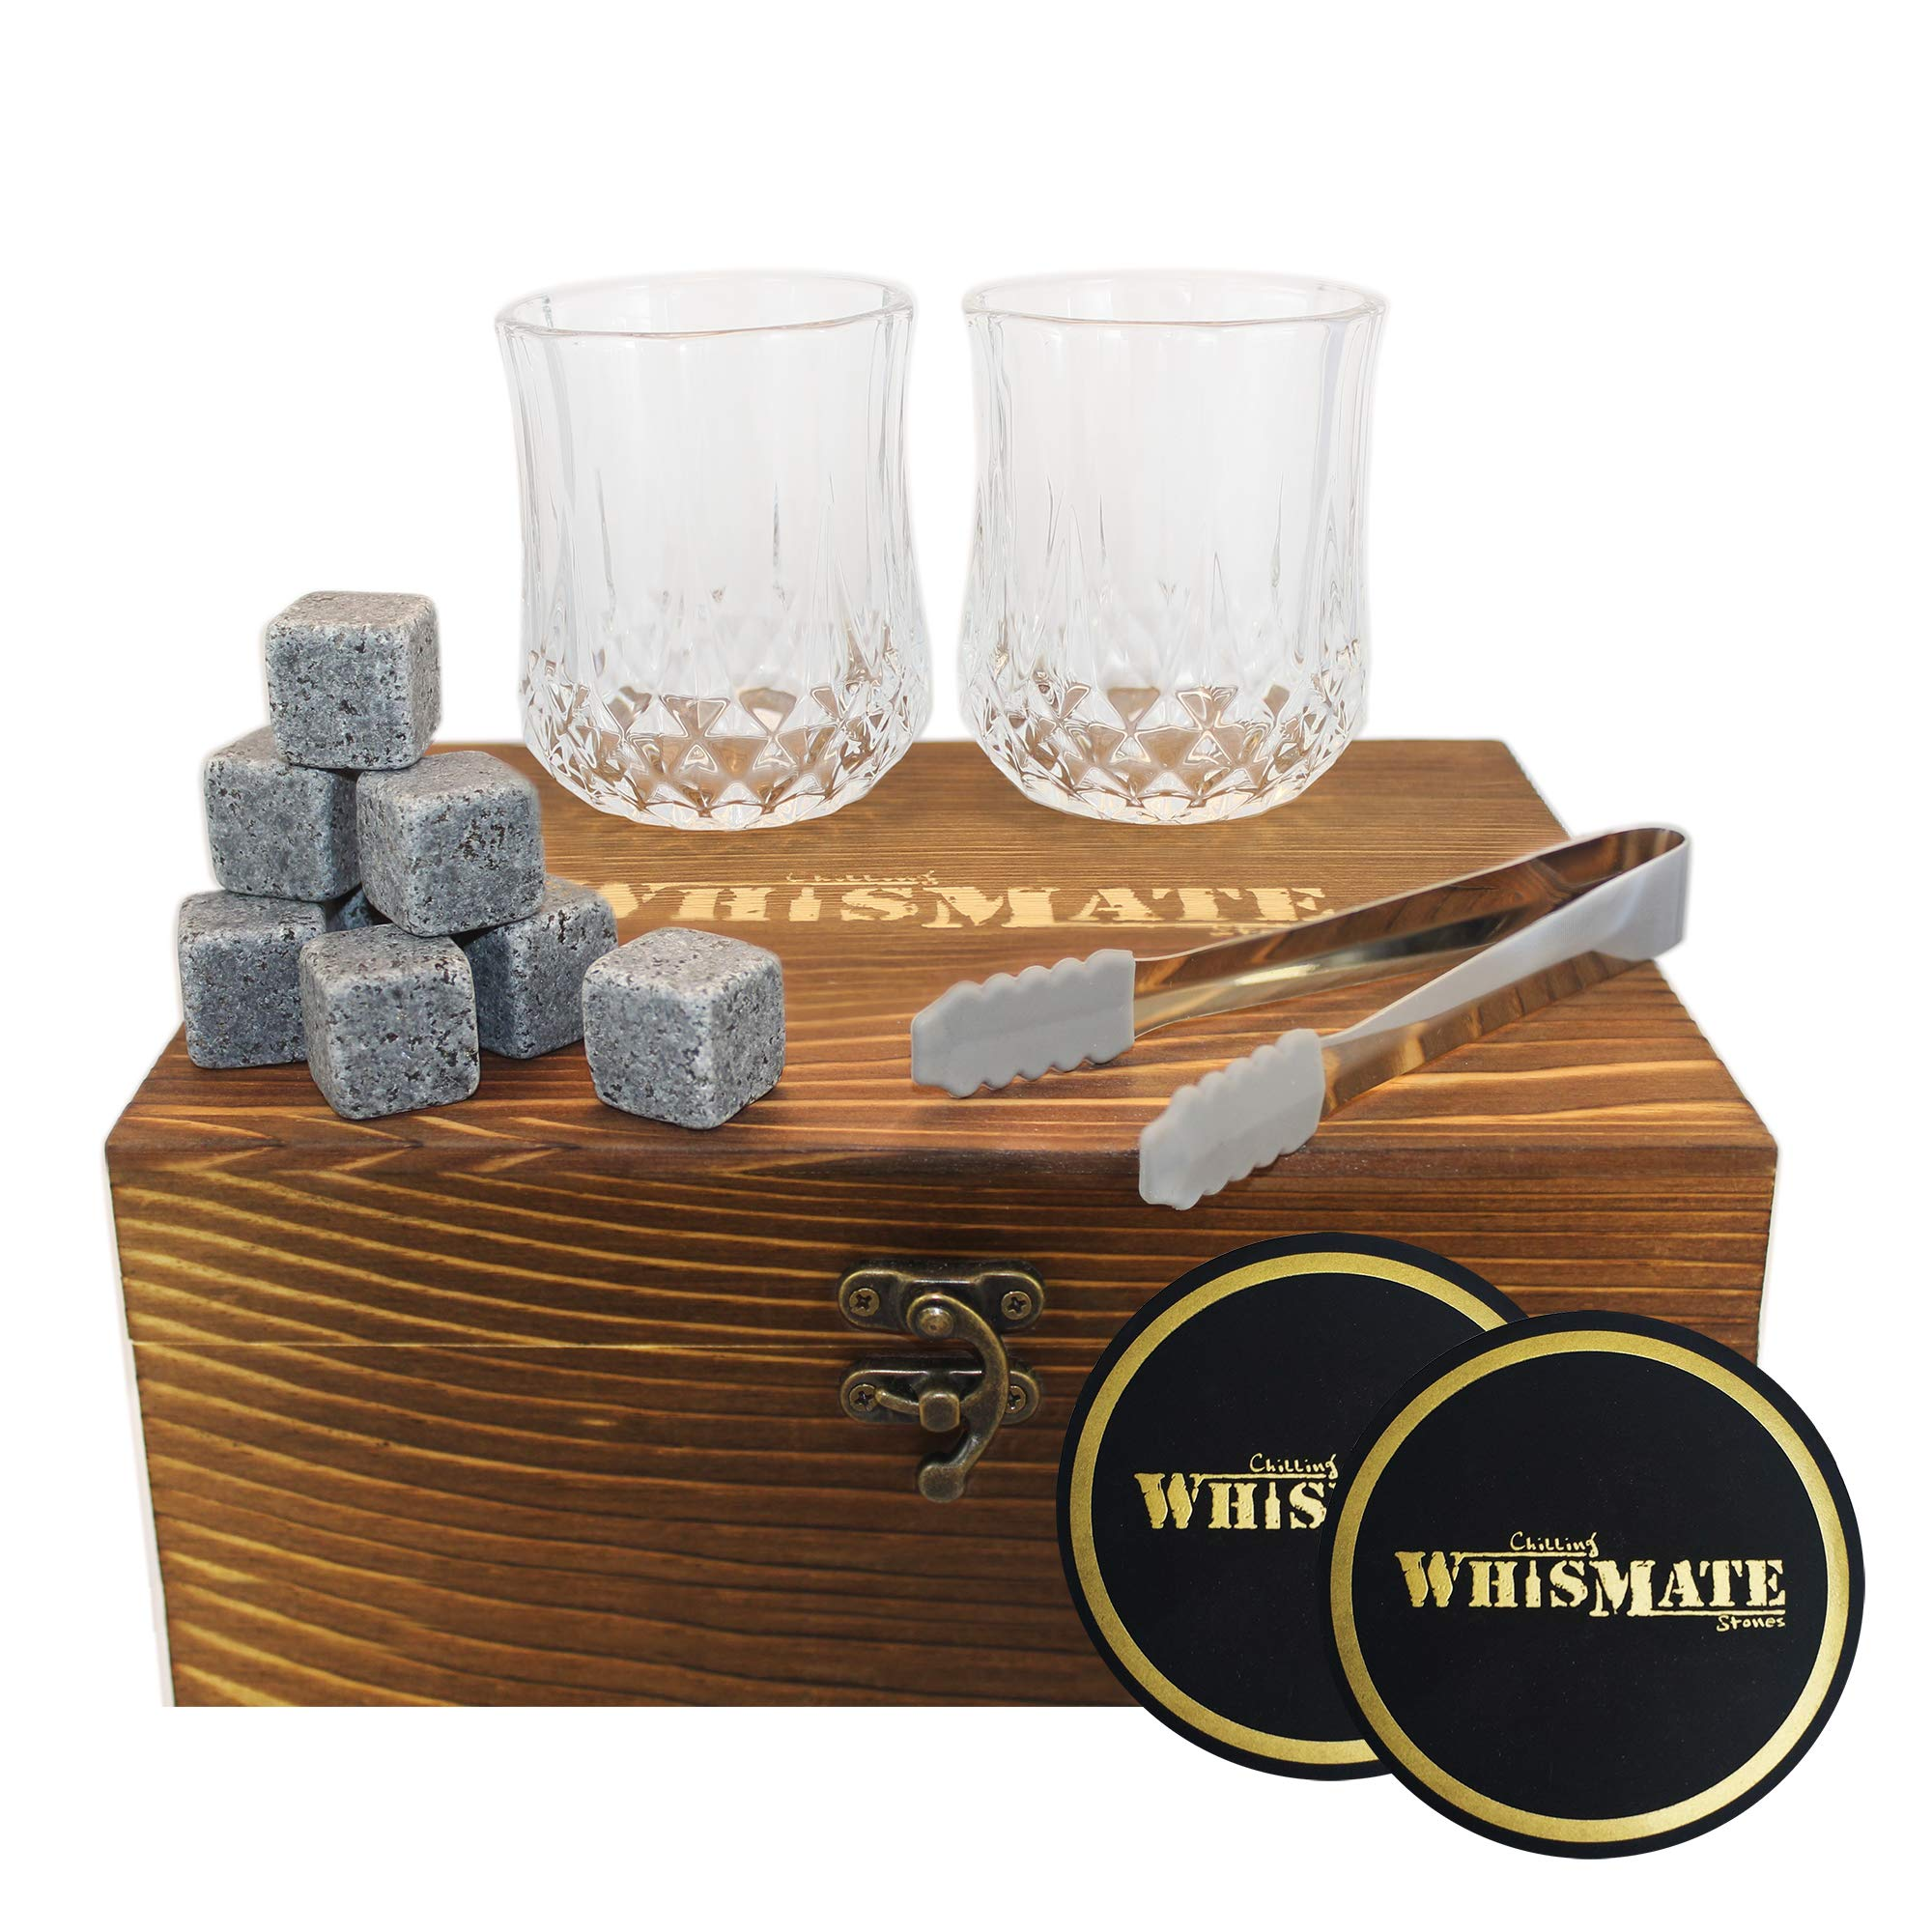 WHISMATE Whiskey Set with 2 Large Crystal Glasses in Handmade Box Includes 8 Granite Chilling Stones Cubes, Velvet Bag, 2 Coasters and a Tong, Reusable Ice Rocks, Great for Dad's Birthday, Dad's Day by WHISMATE